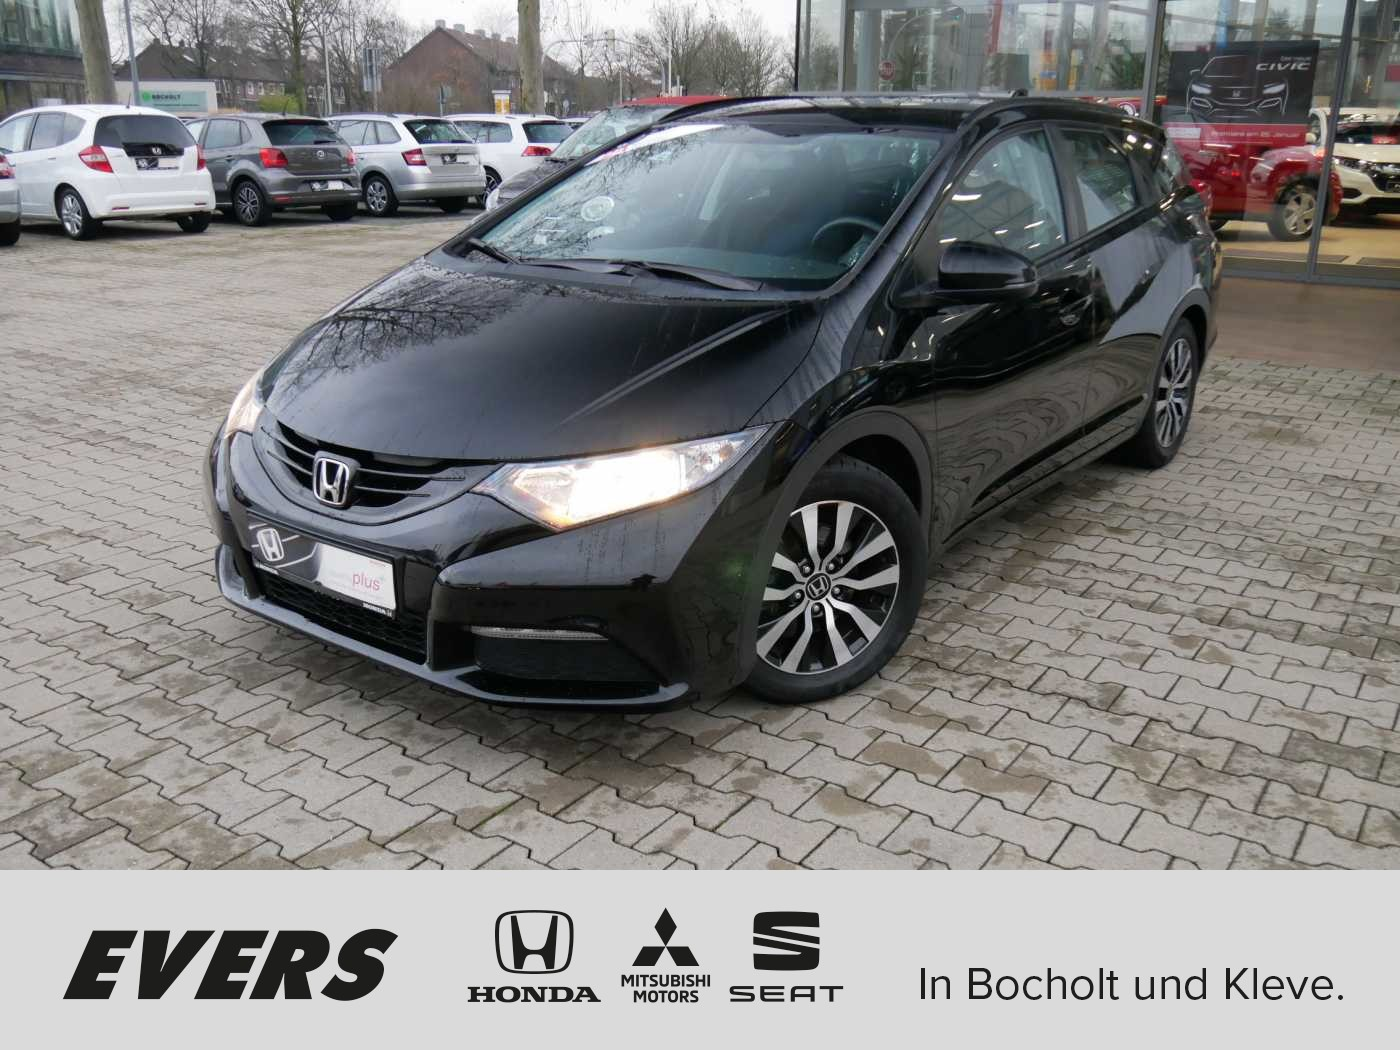 Honda Civic Tourer 1.8 i-VTEC +2J.GARANTIE+MAGIC SEATS, Jahr 2014, Benzin